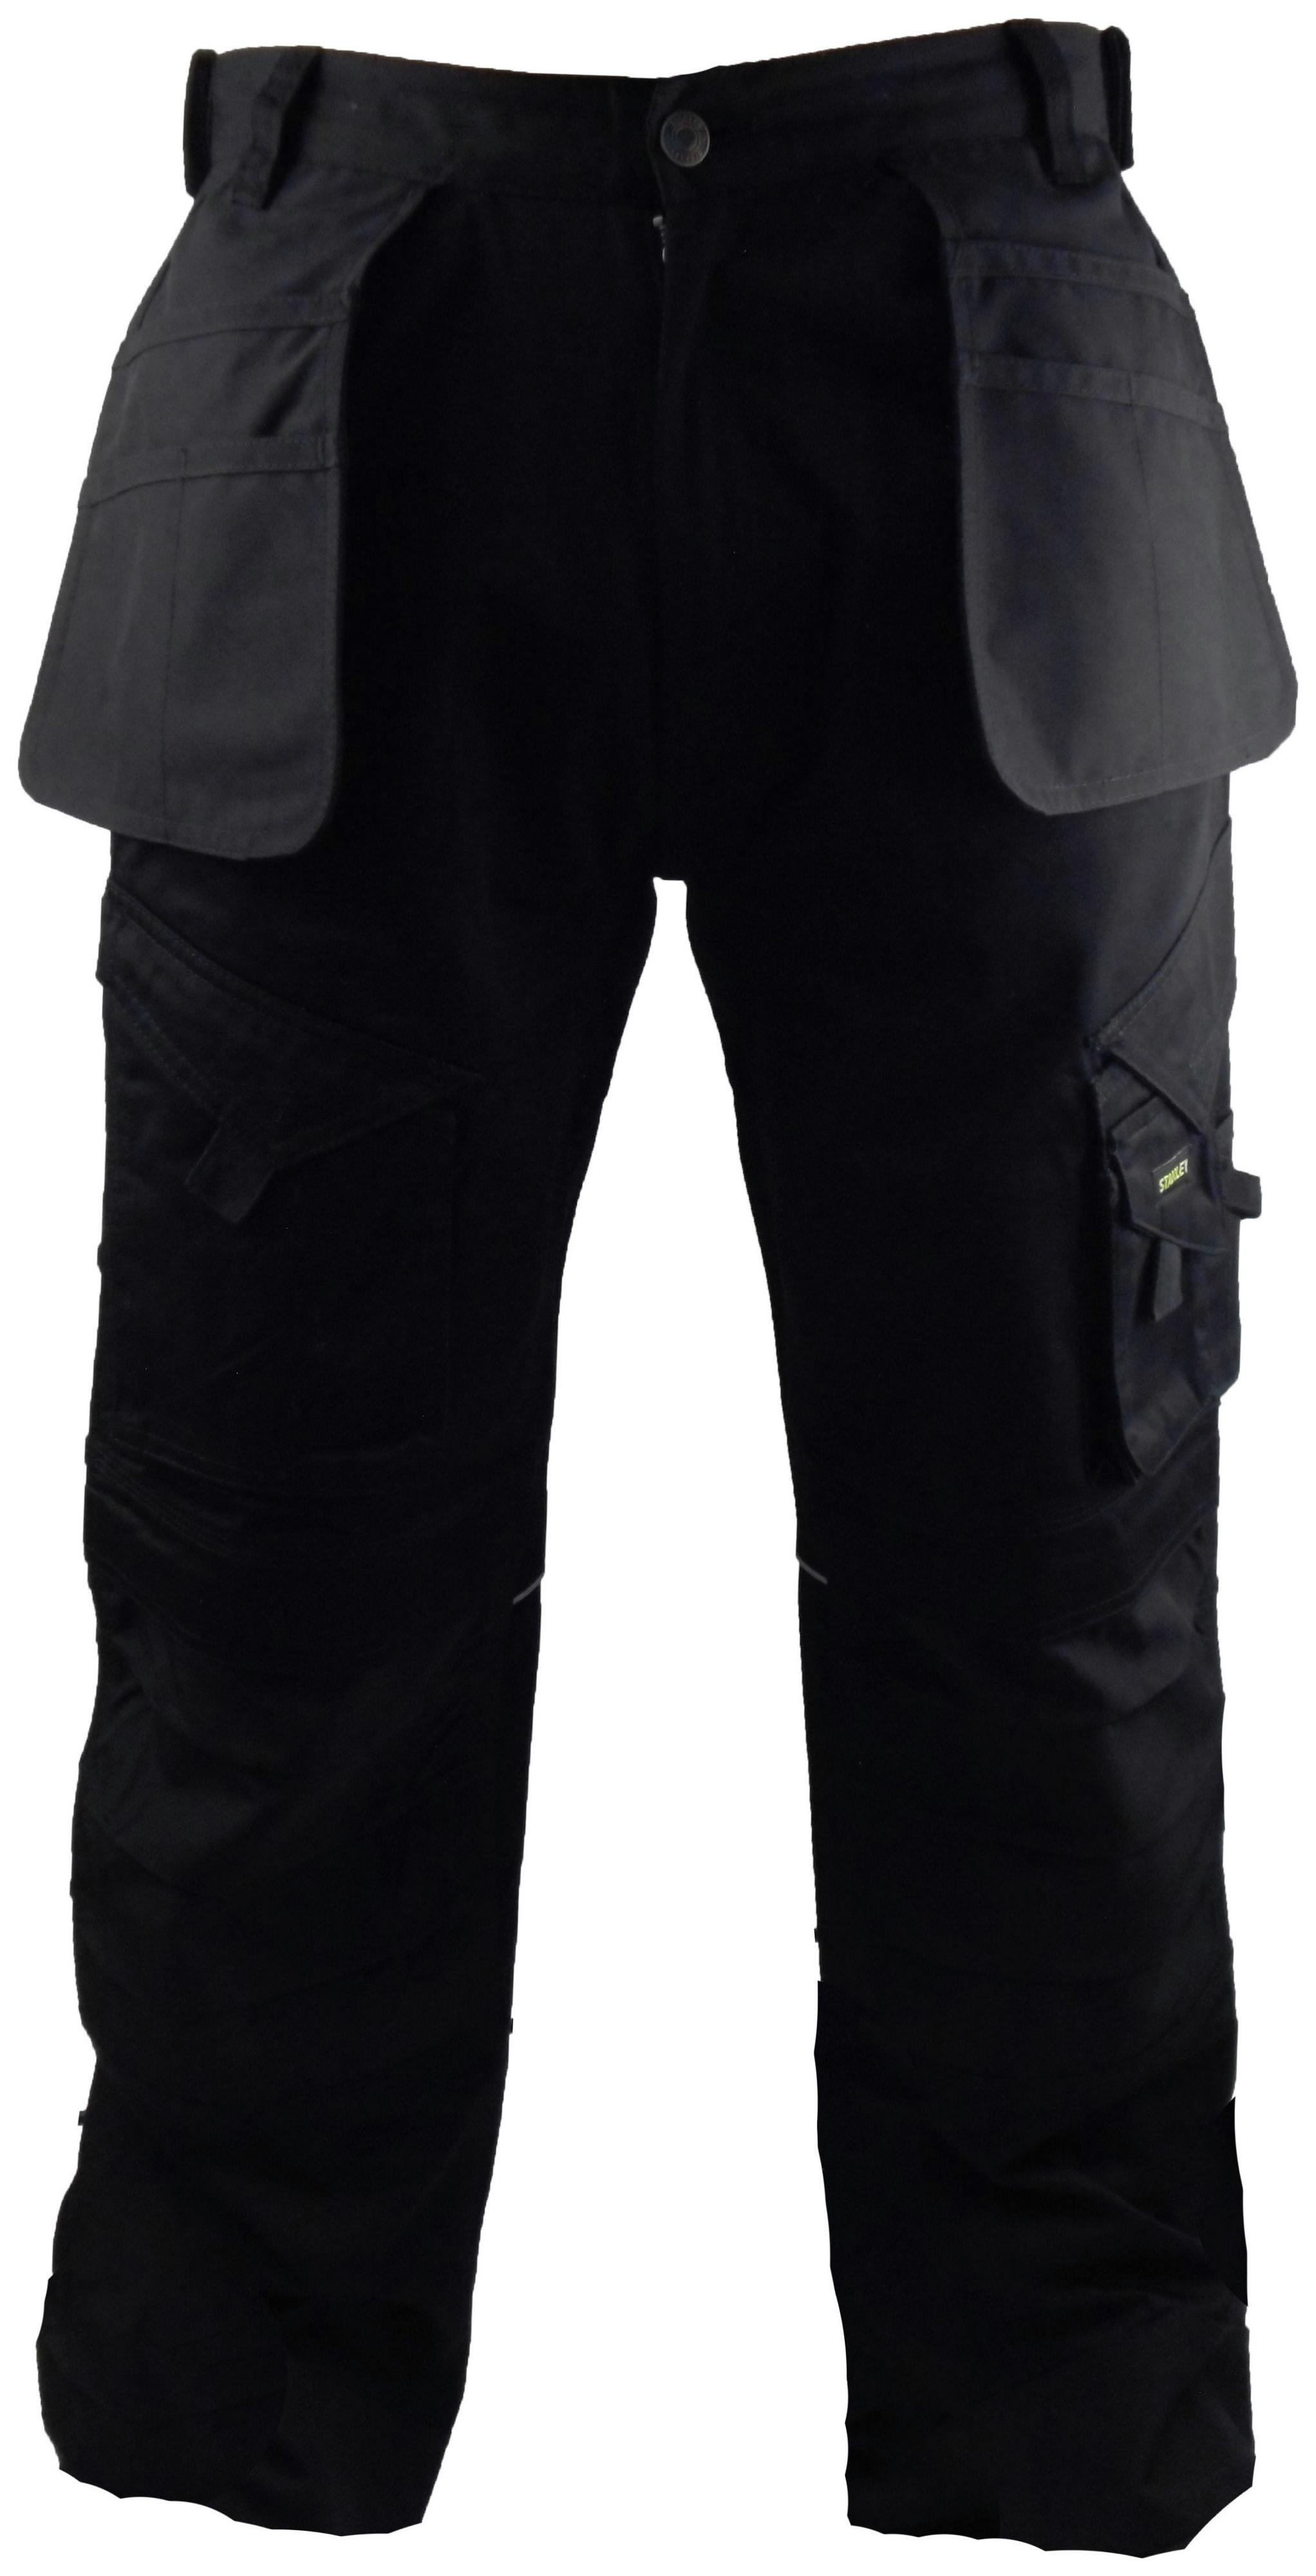 Image of Stanley - Colorado - Mens - Black Trouser - 31 to 34 inch